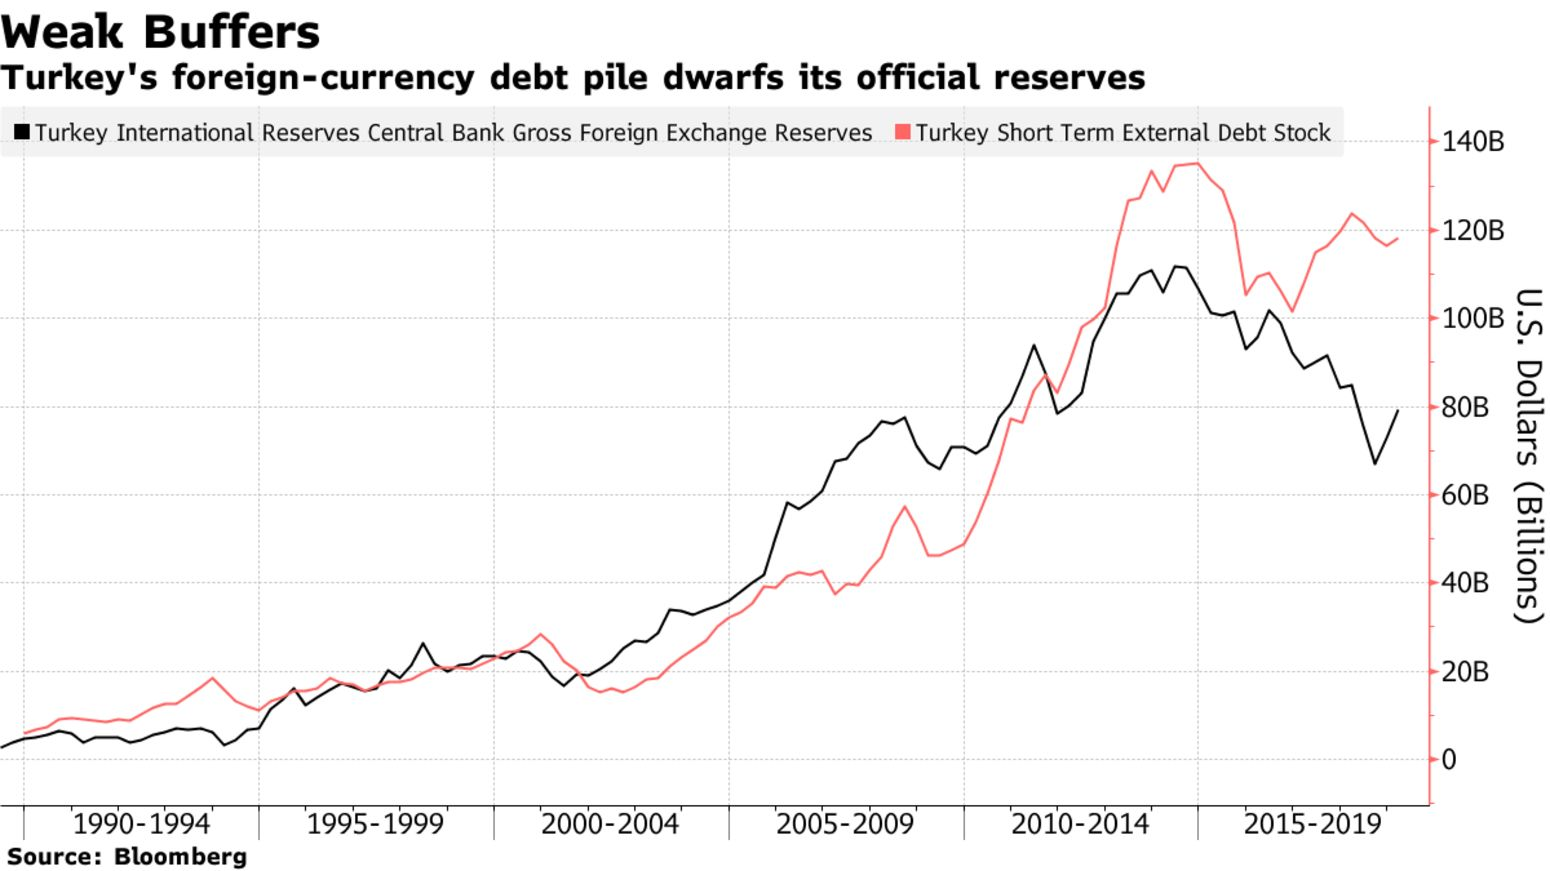 Turkey's foreign-currency debt pile dwarfs its official reserves